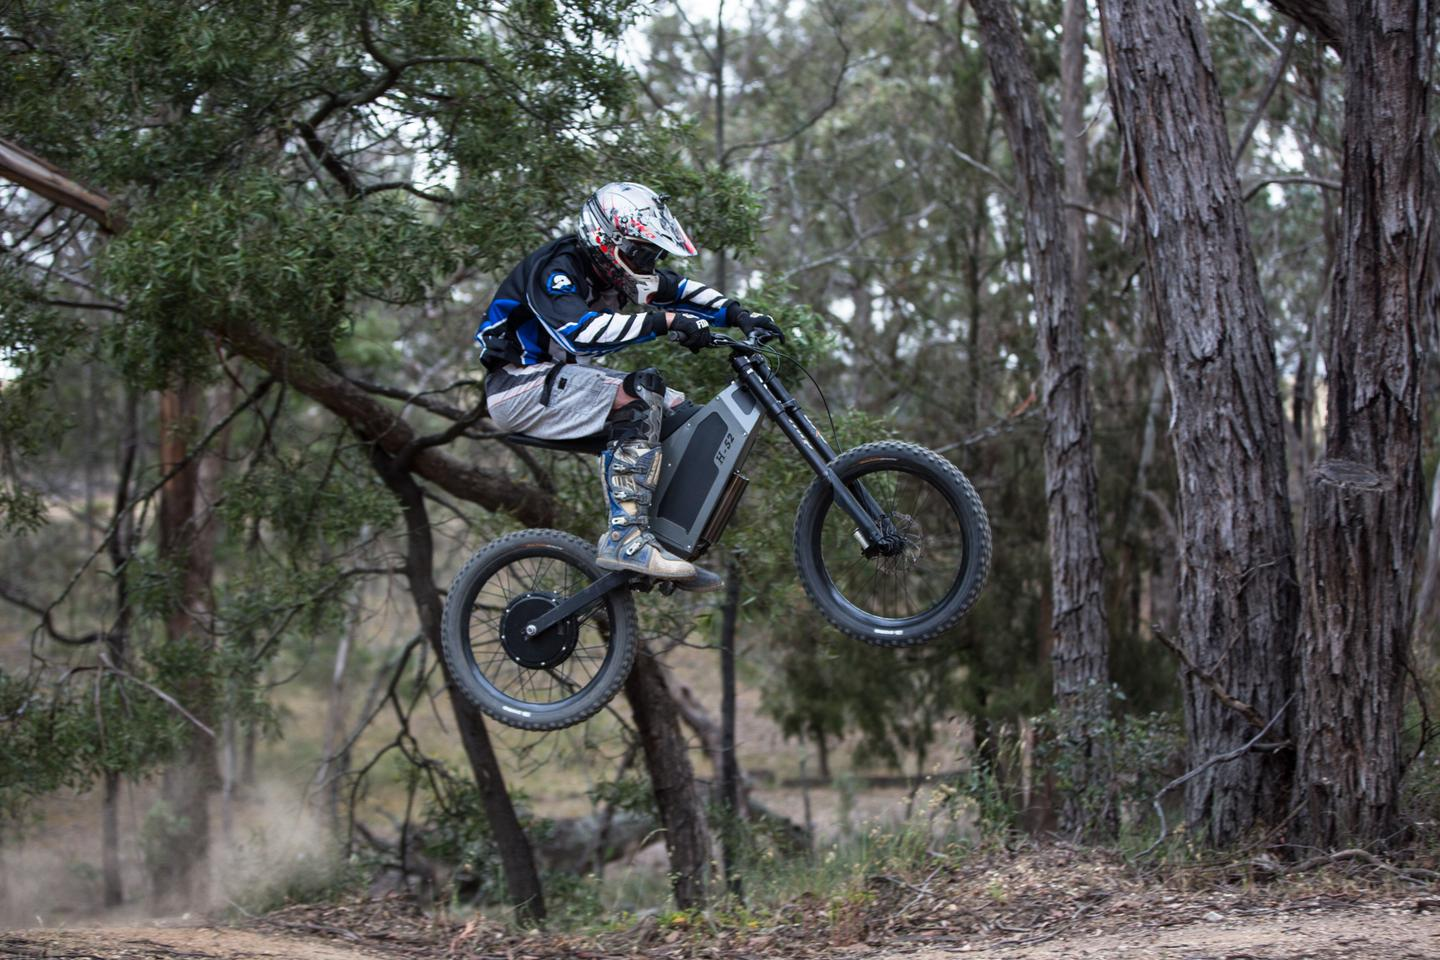 Taking to the air on Stealth's H-52 electric bike